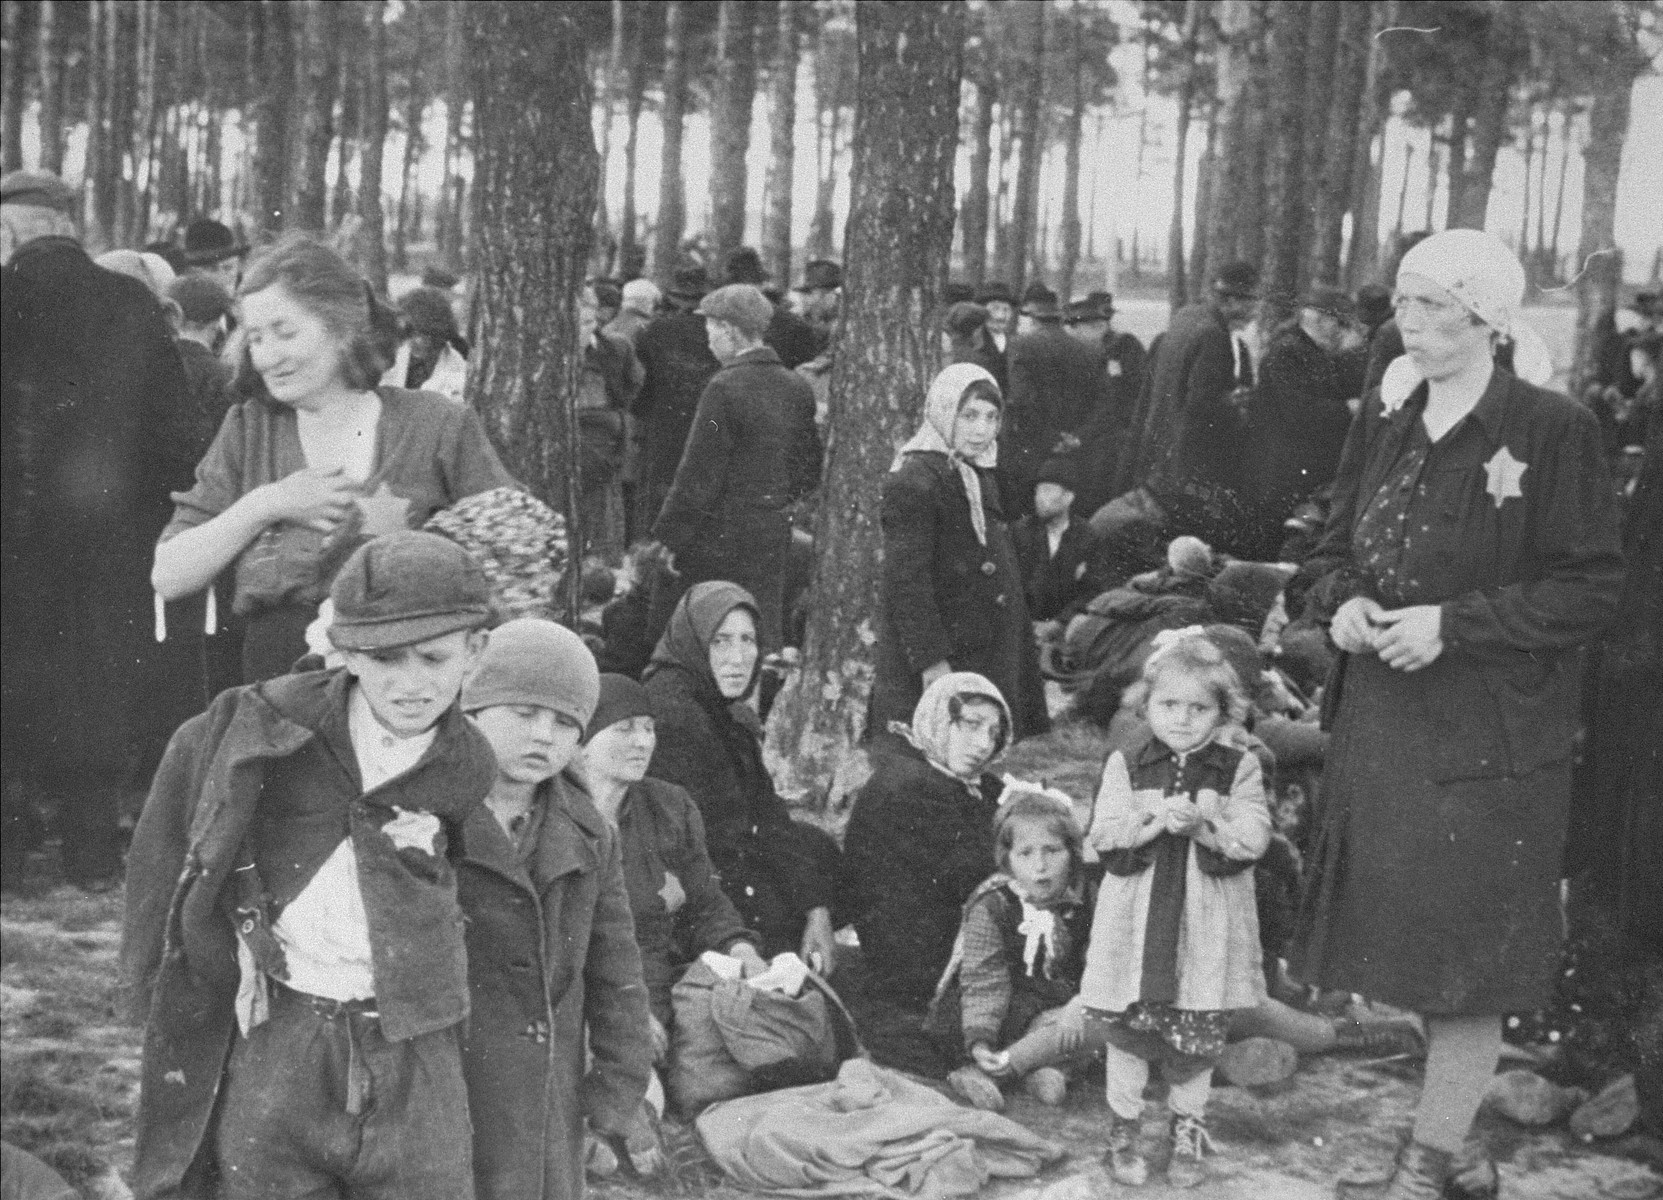 Jews from Subcarpathian Rus who have been selected for death at Auschwitz-Birkenau, wait in a clearing near a grove of trees before being led to the gas chambers.  Pictured on the bottom row from left to right: Reuven and Gershon Fogel, their mother Laja Mermelstein Fogel, Tauba Mermelstein, Tauba's daughter and her granddaughters one of whom was named Gerti.  The Mermelsteins were from Mukacevo.